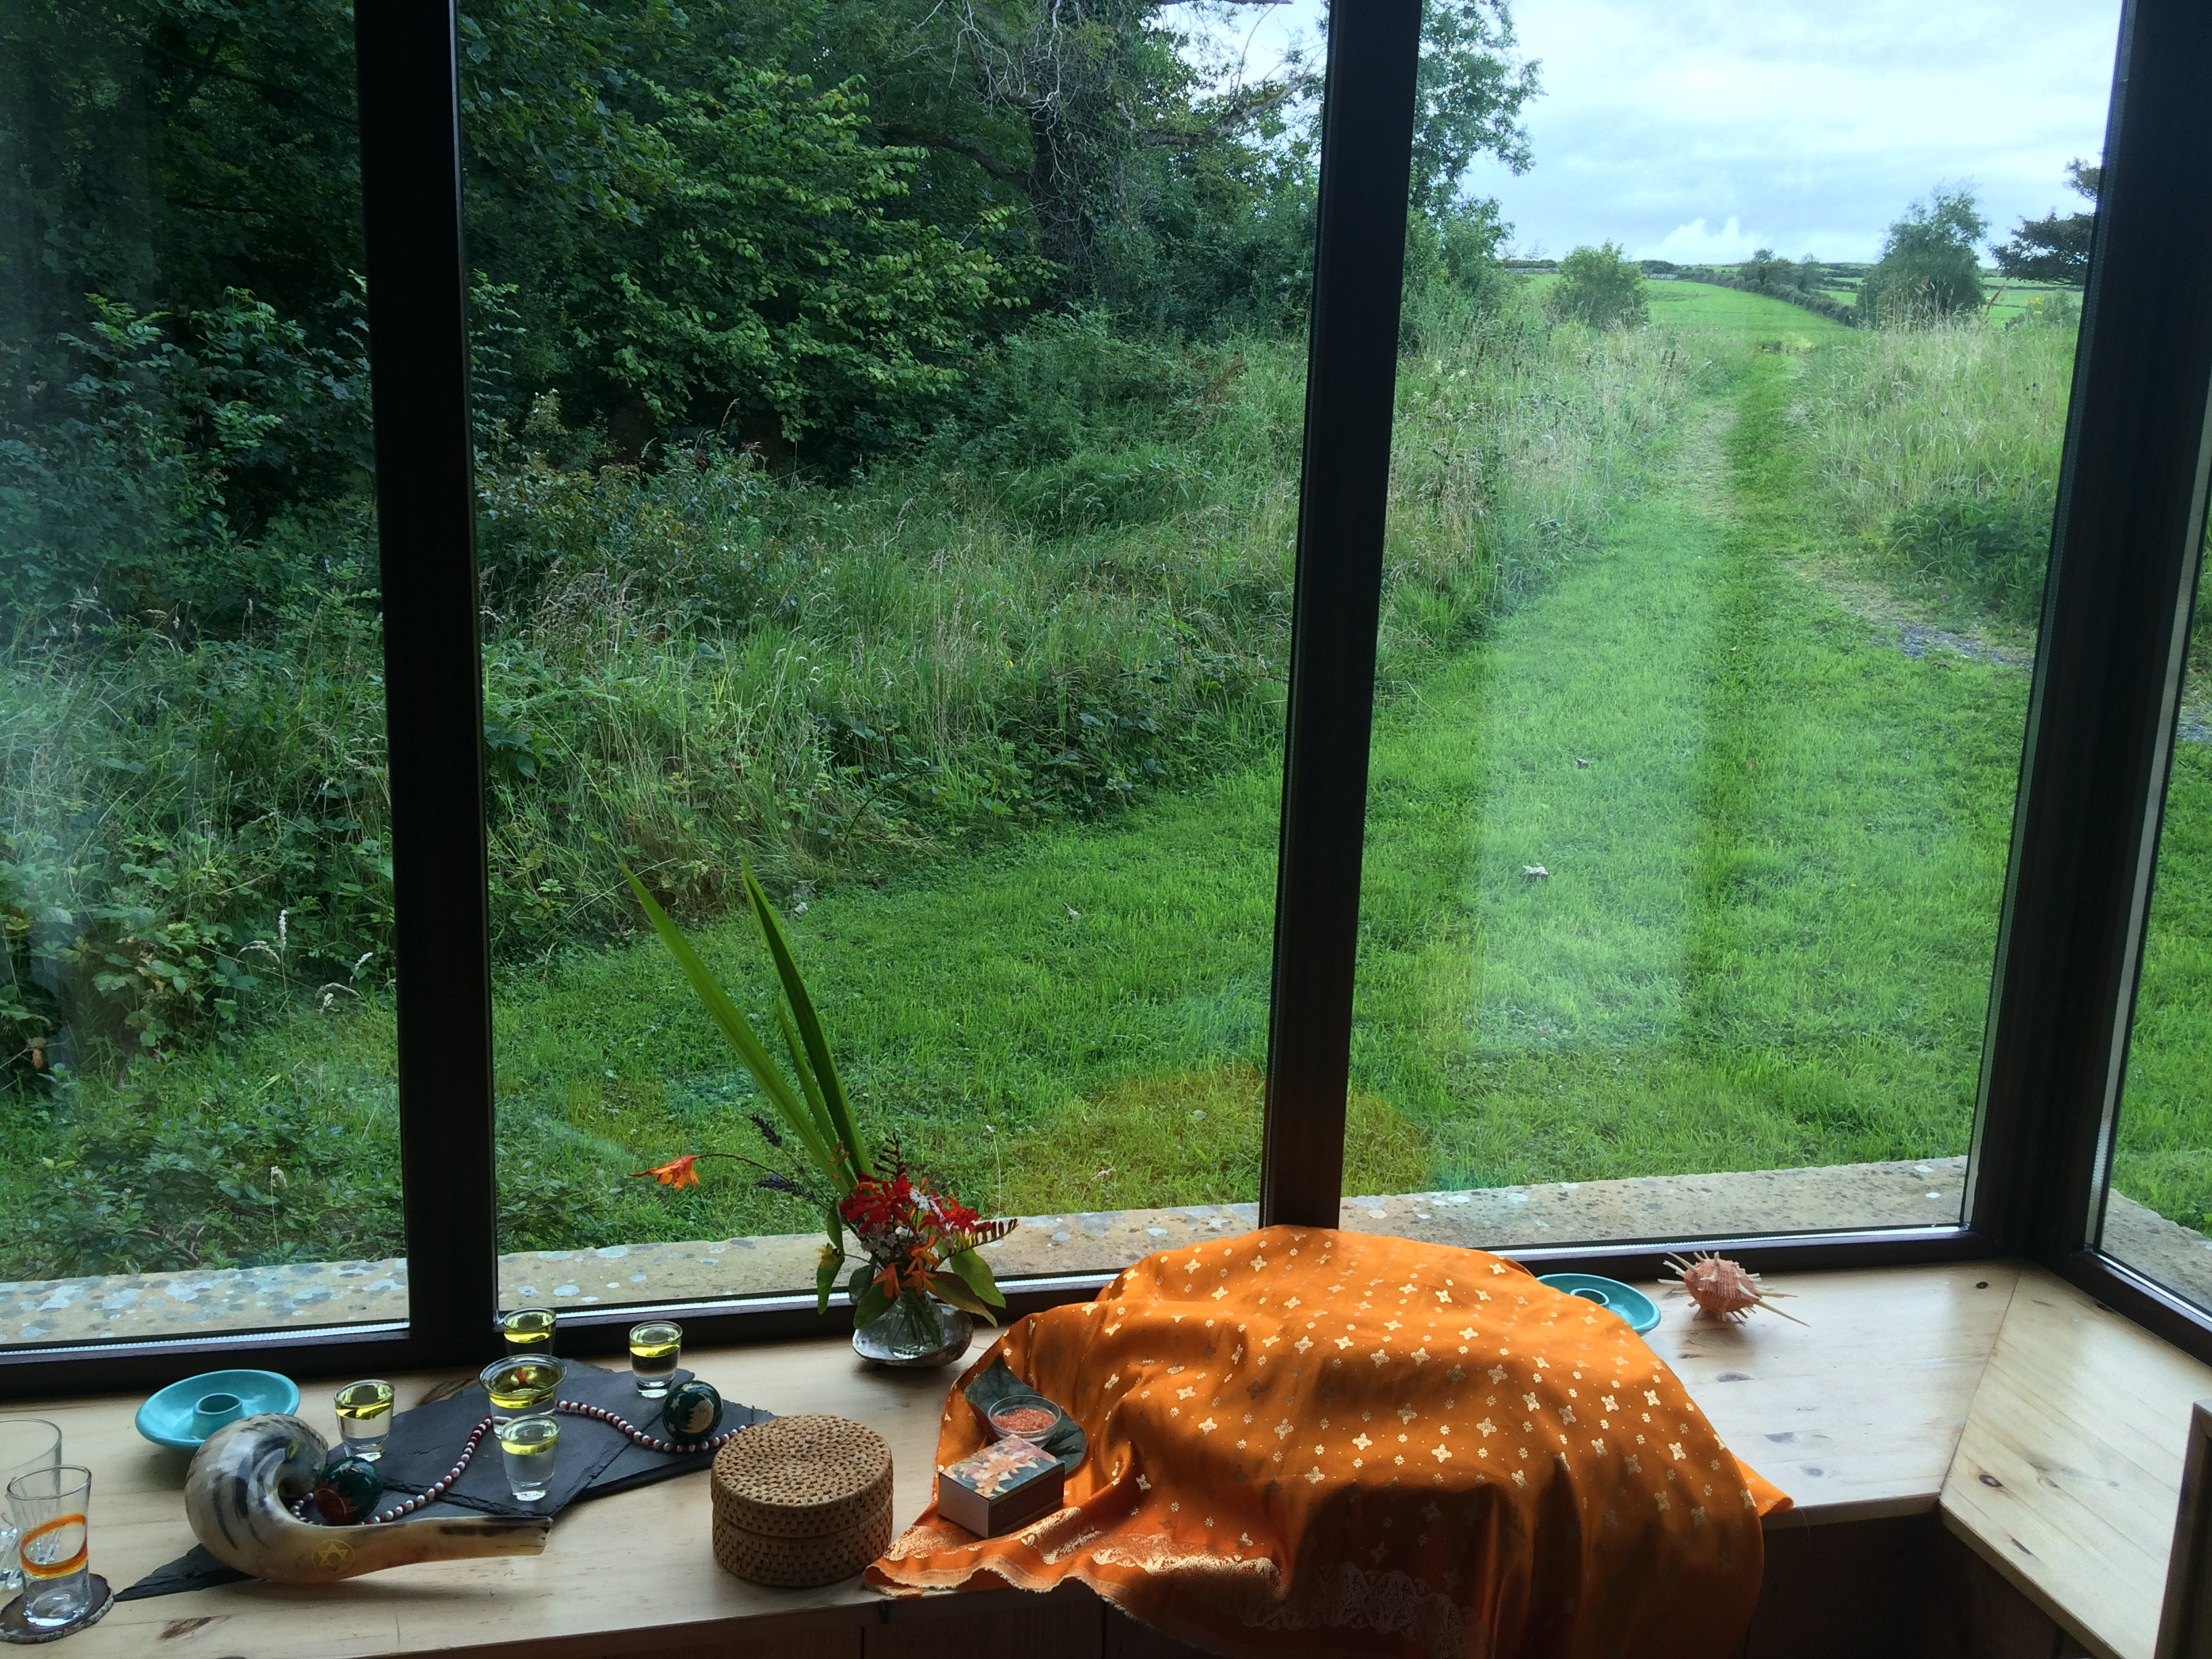 Shofar, Challah under orange cloth, Shabbat oil-wicks and one of my Holy Views right before Shabbat.